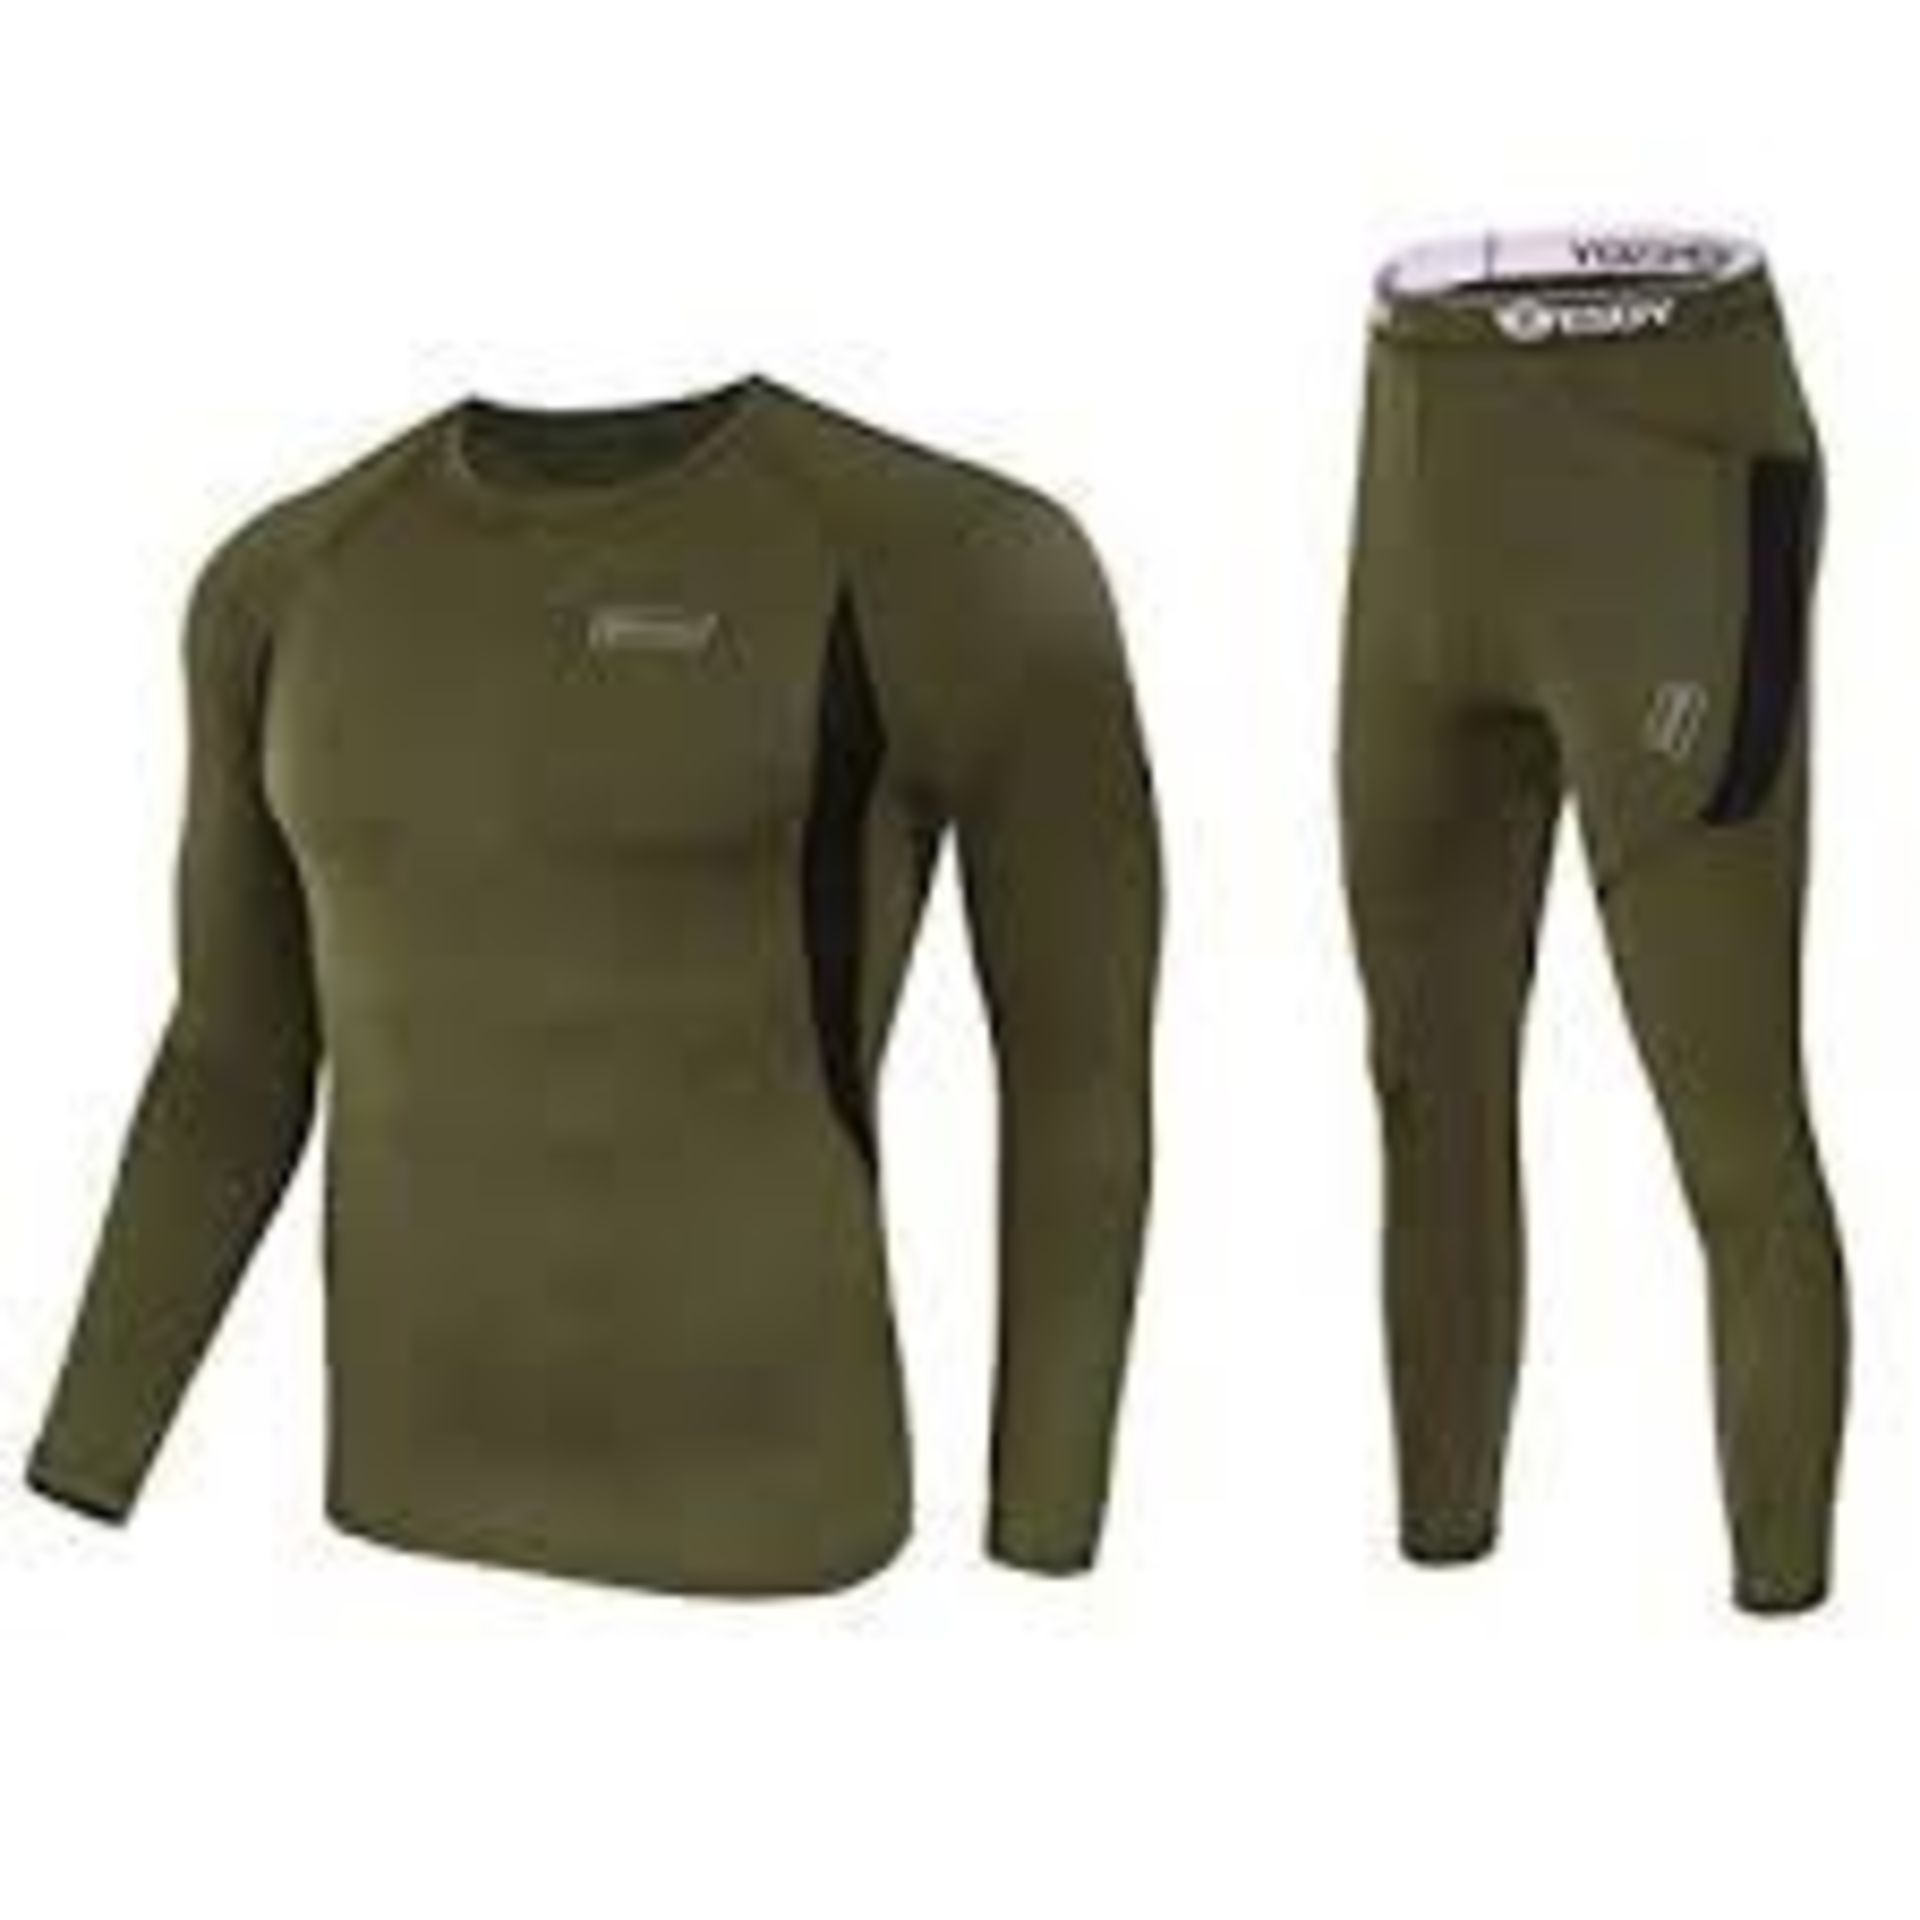 Lot 908 - Brand New ESDY Black and Khaki Thermal Gents Under Garments